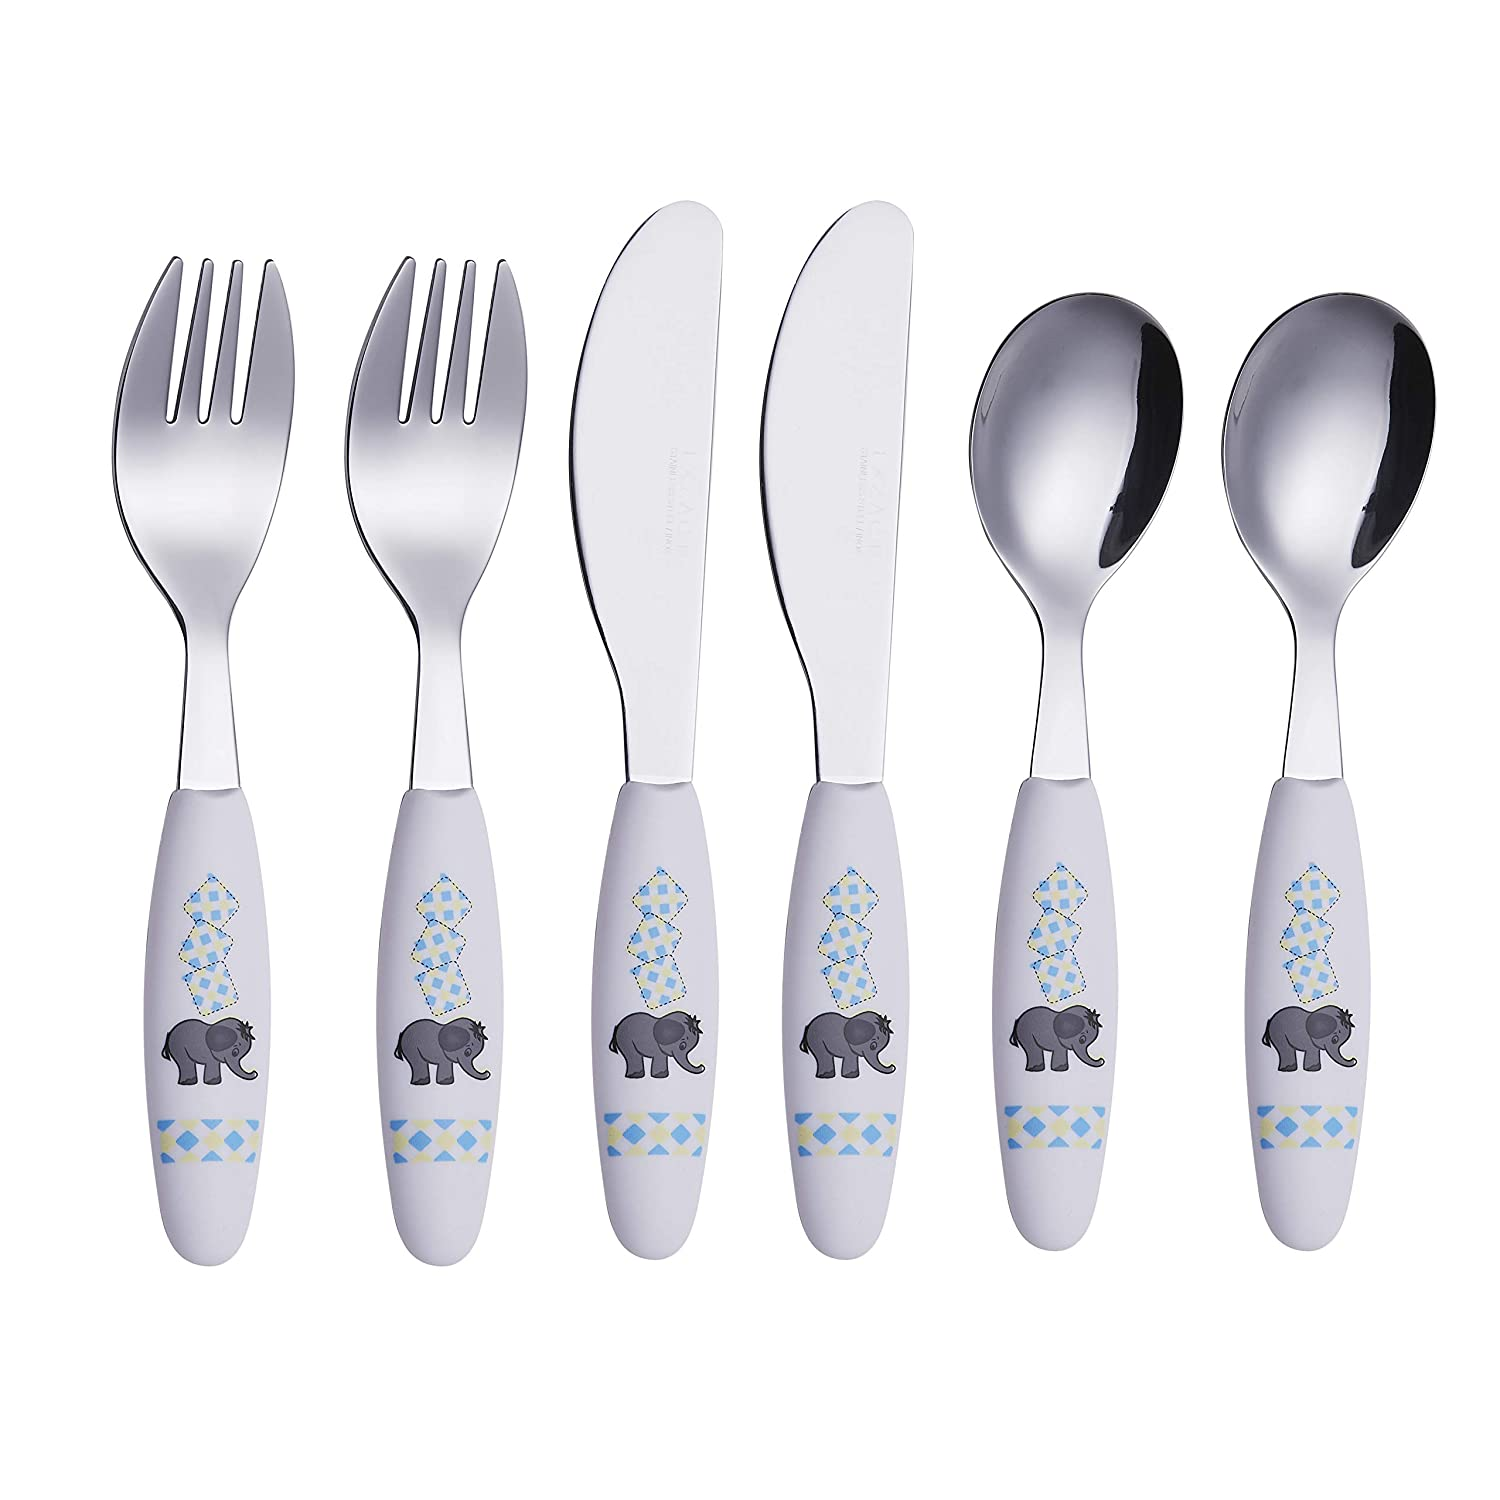 Exzact Kids Silverware Set 6 Pieces - Childrens Flatware Stainless Steel - 2 x Children Safe Forks, 2 x Safe Table Knife, 2 x Tablespoons, Toddler Utensils for Lunch Box BPA Free (Elephant - 6 PCS)